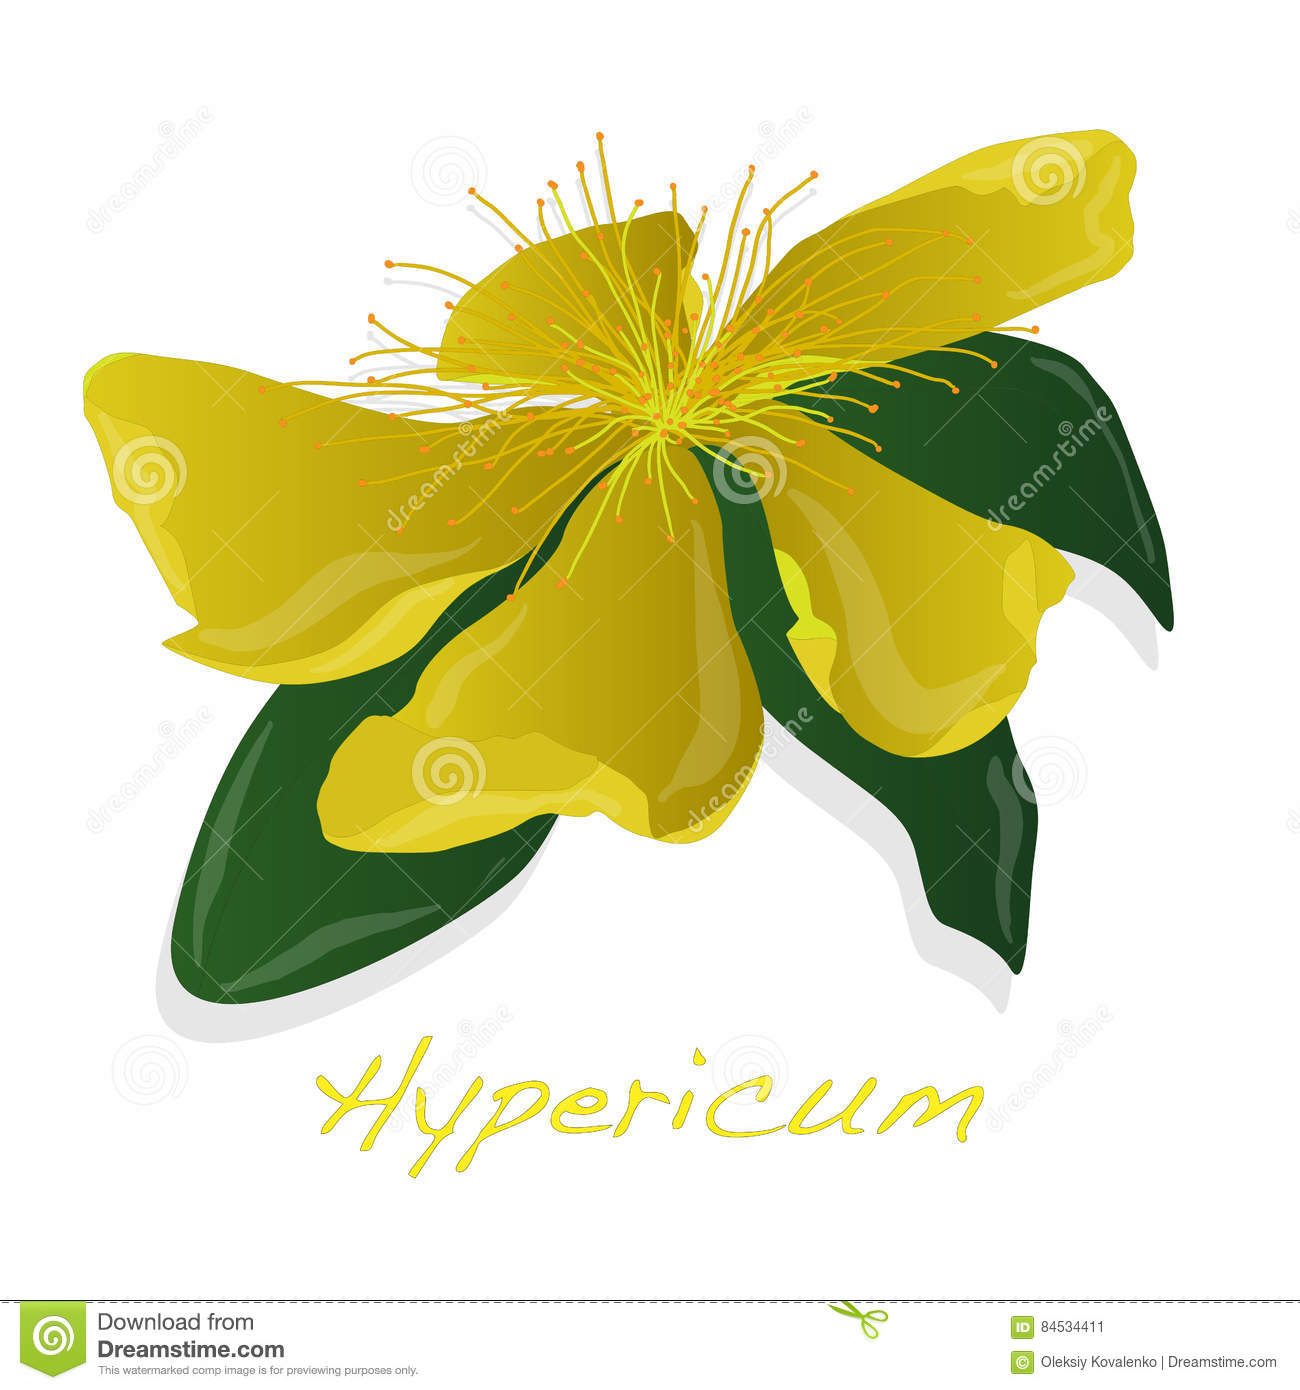 Hypericum Flower Stock Vector.